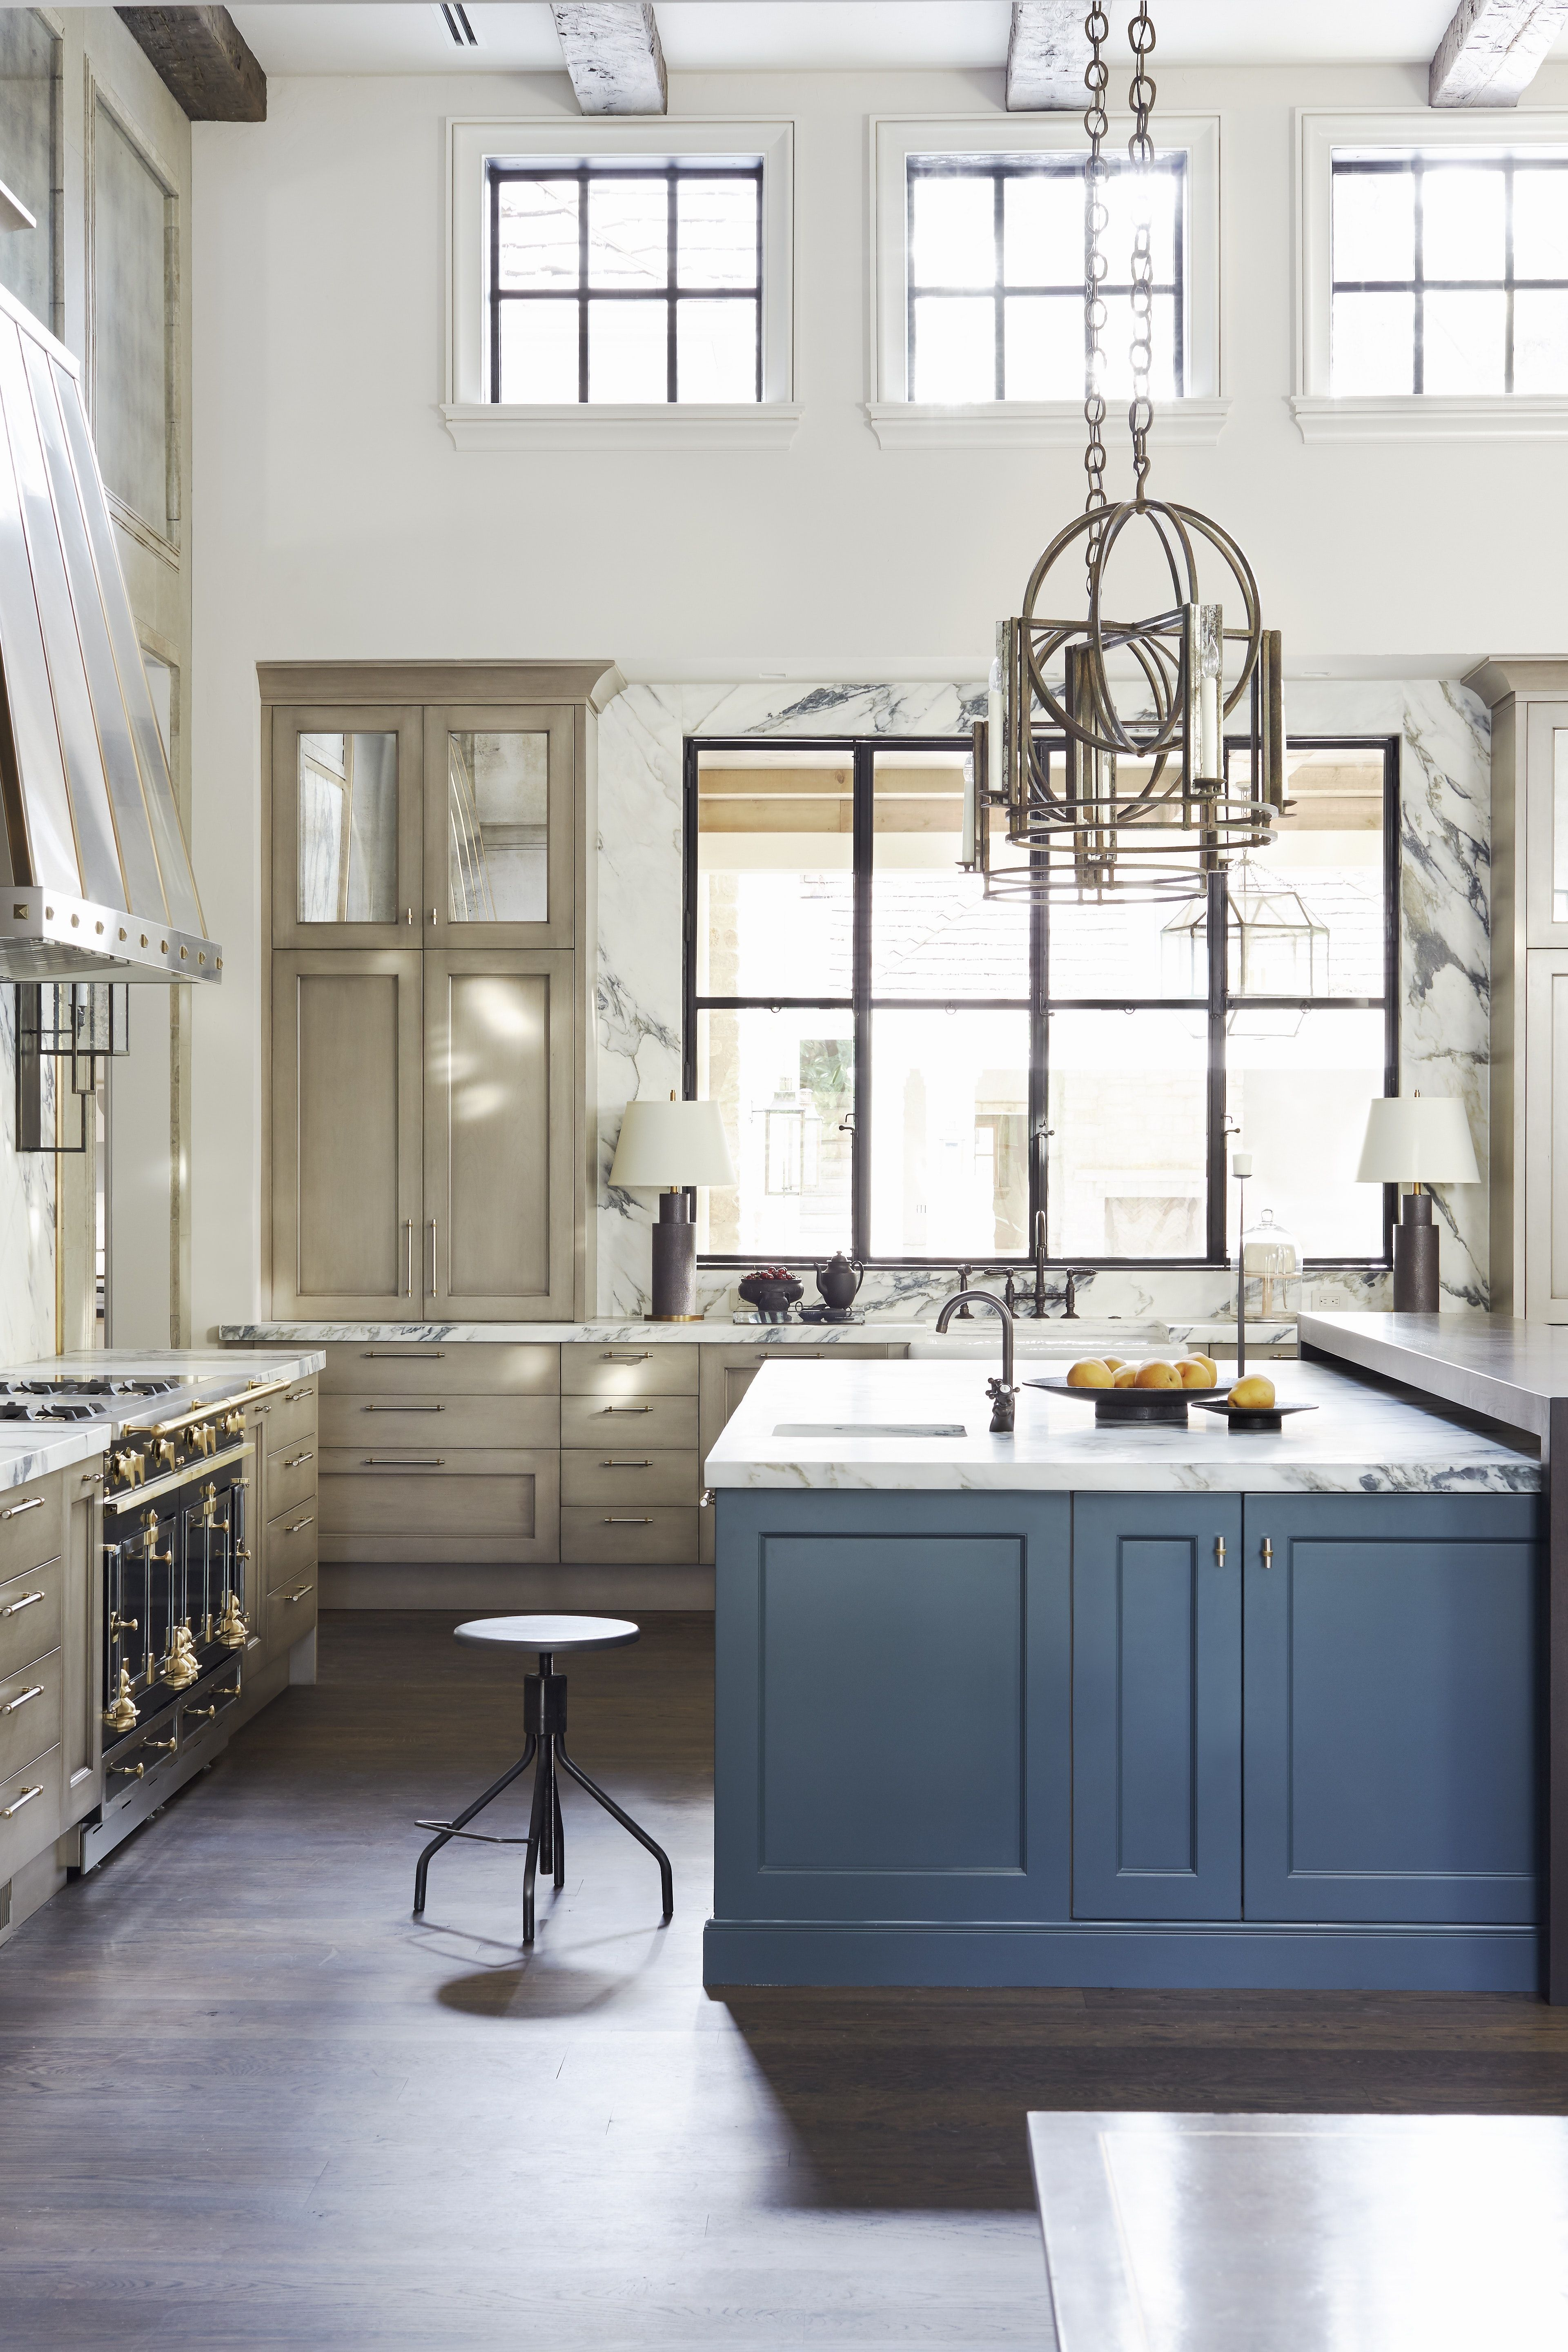 High Ceilinged Kitchen With Blue Island Cabinets Exposed Beams Kitchen Inspirations Kitchen Design Interior Design Portfolios